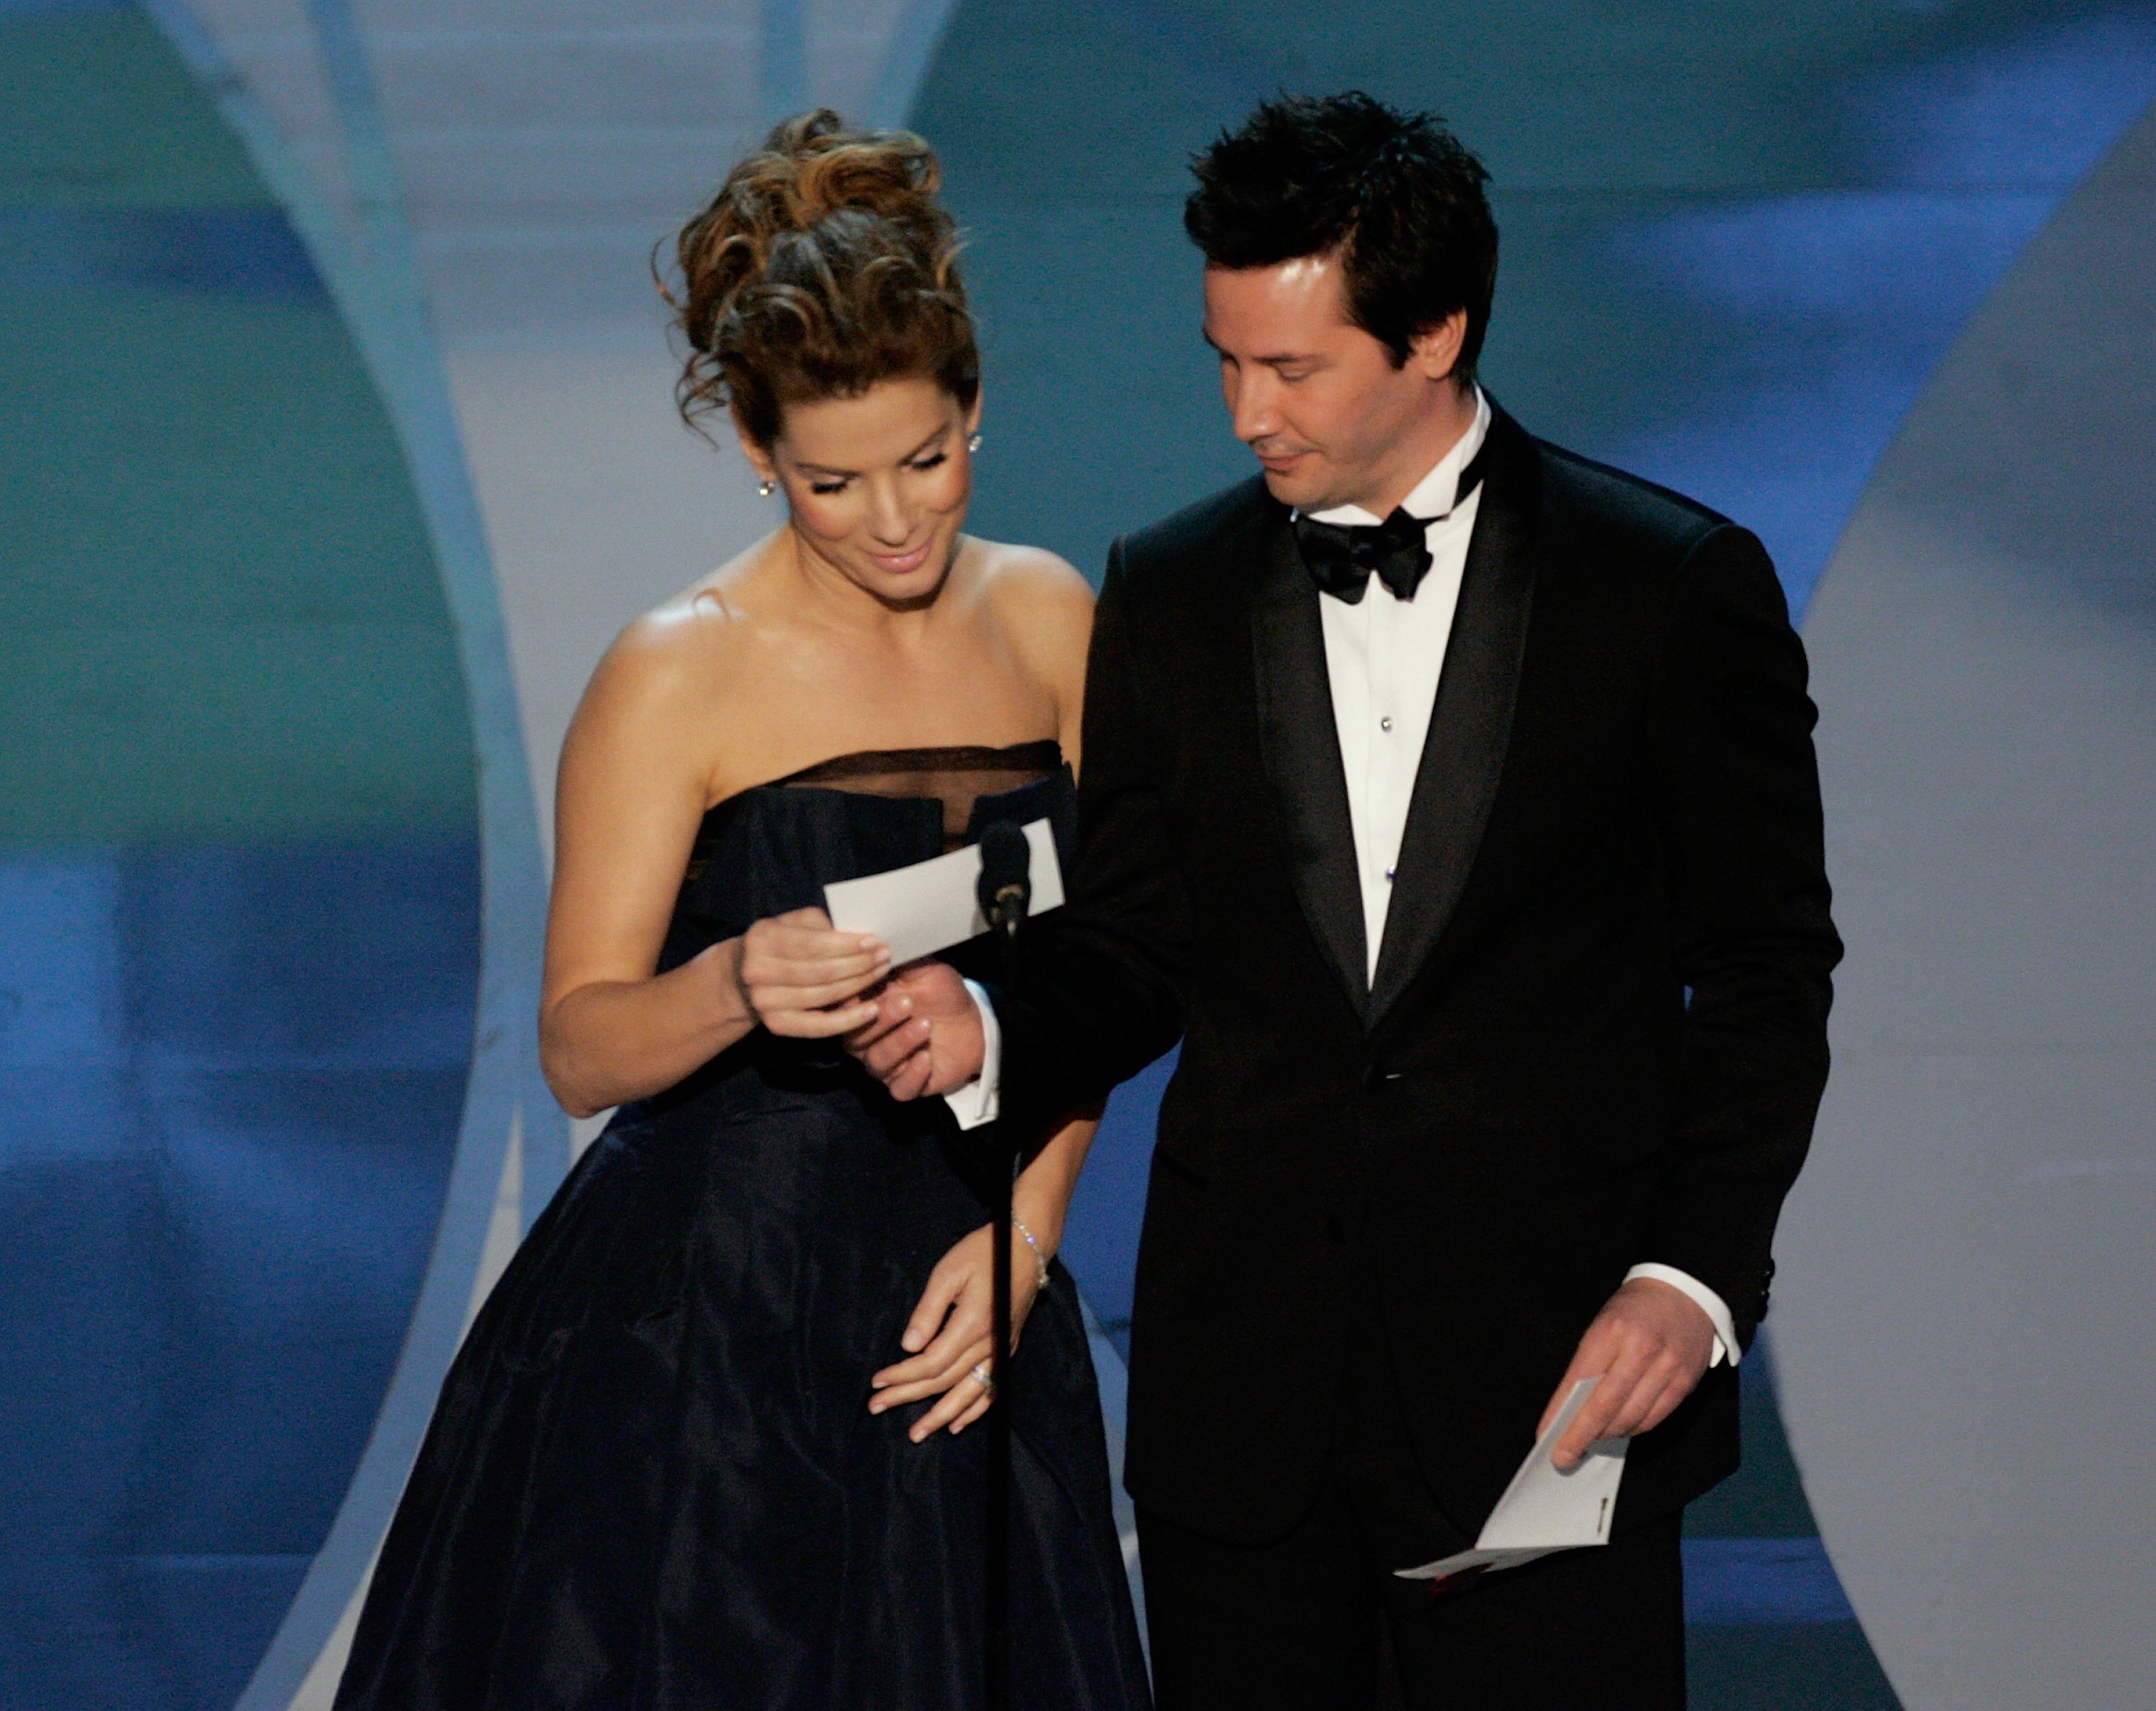 Actors Sandra Bullock and Keanu Reeves present the Achievement in Art Direction on stage during the 78th Annual Academy Awards at the Kodak Theatre on March 5, 2006, in Hollywood, California. (Getty Images)